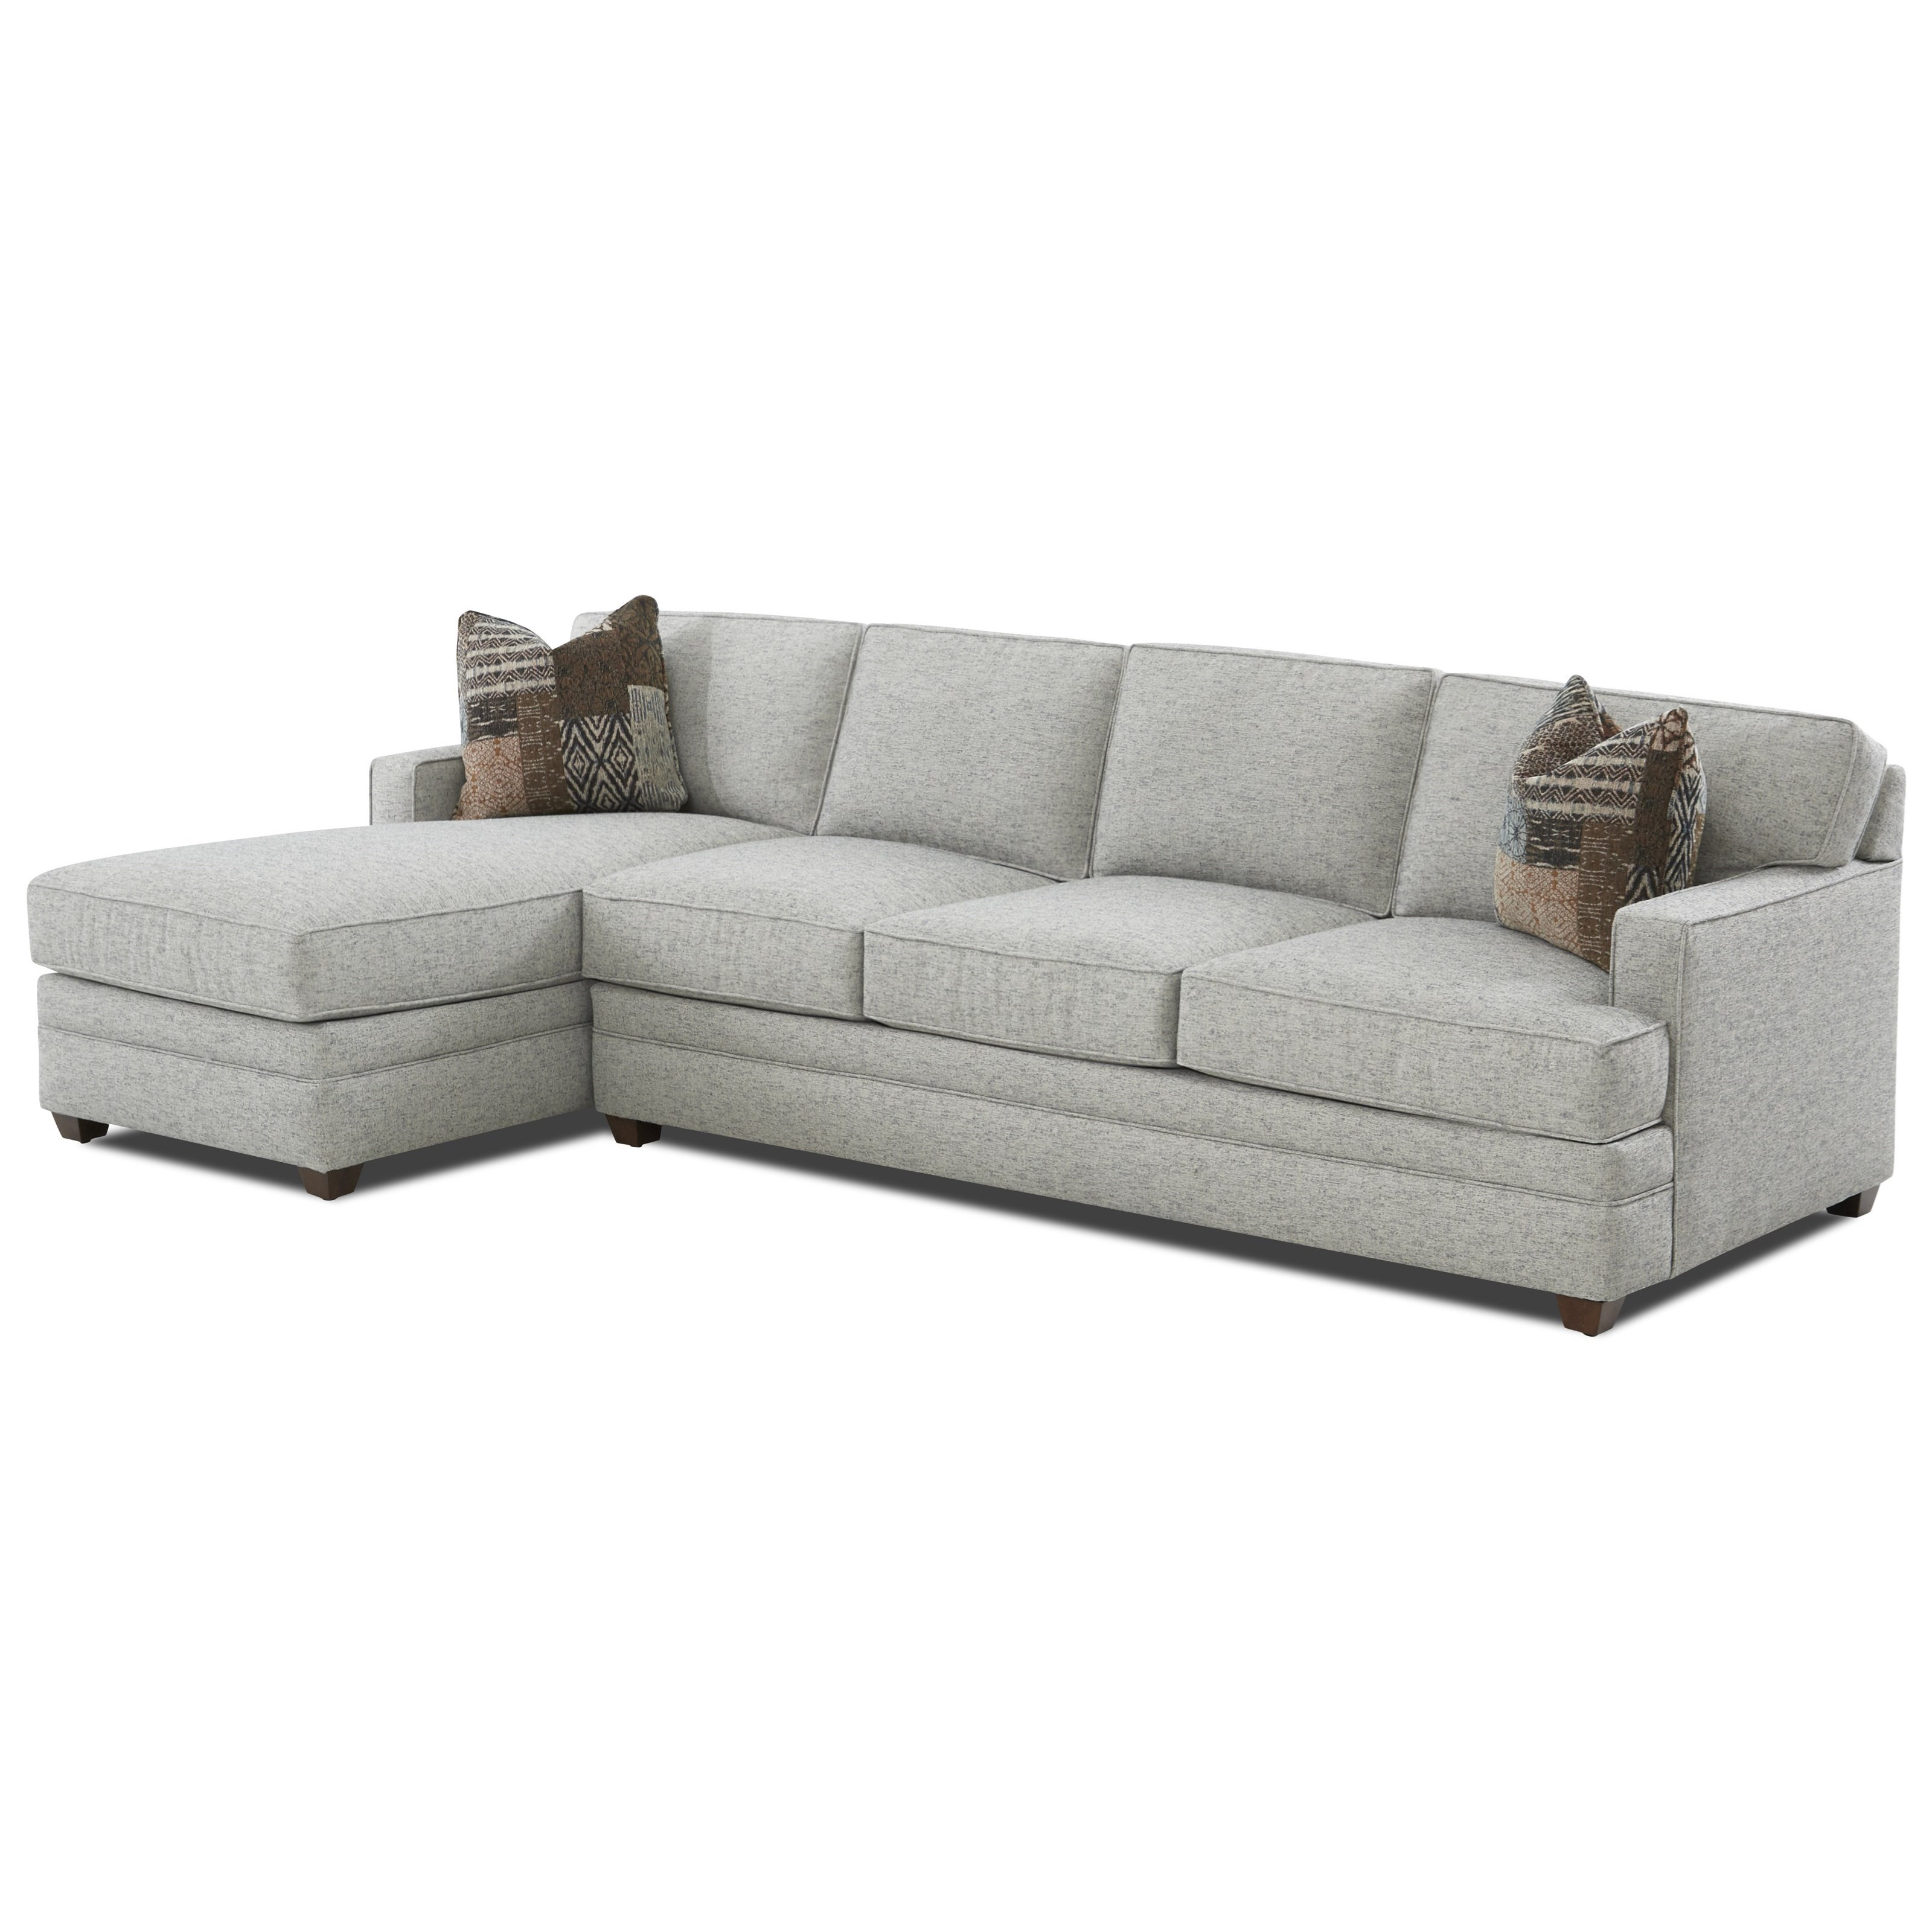 Living Your Way 2-Piece Sectional by Klaussner at Johnny Janosik